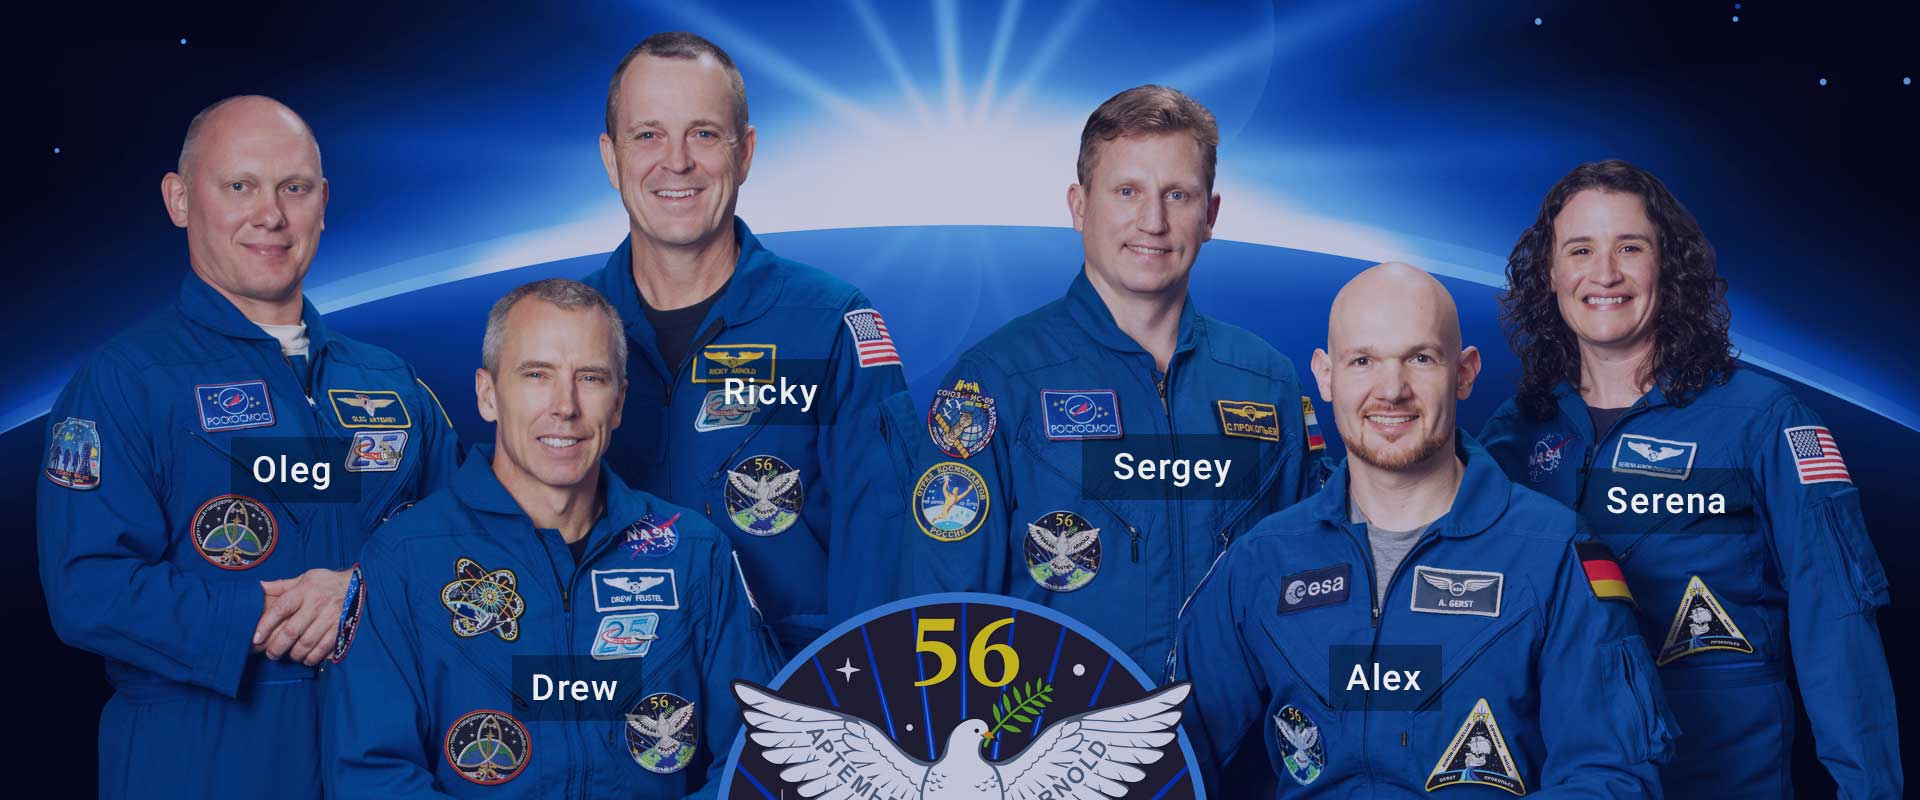 Crew of Expedition 56